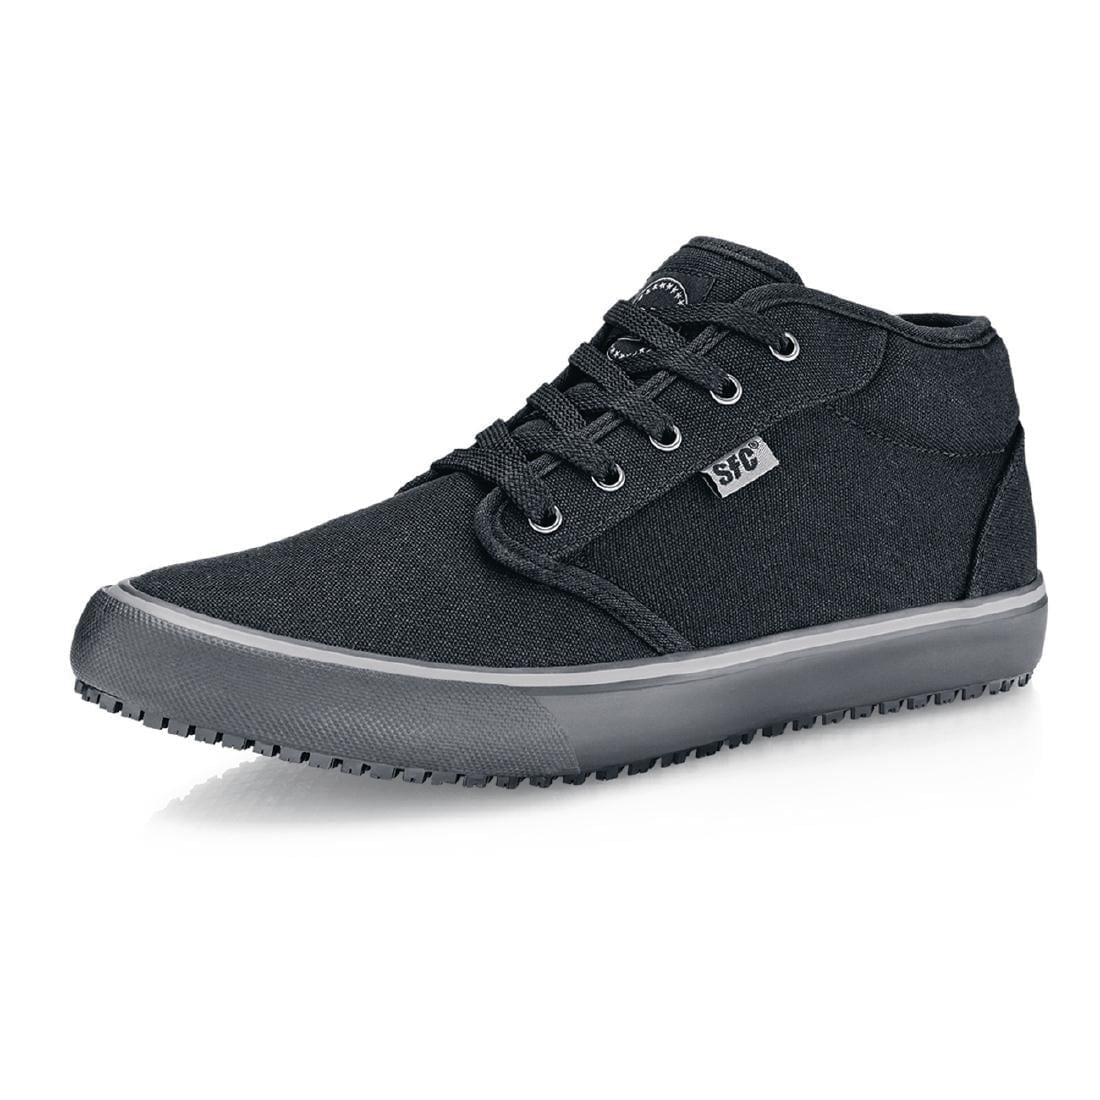 Shoes For Crews Coated Canvas Lace up Boot - Size 47-0